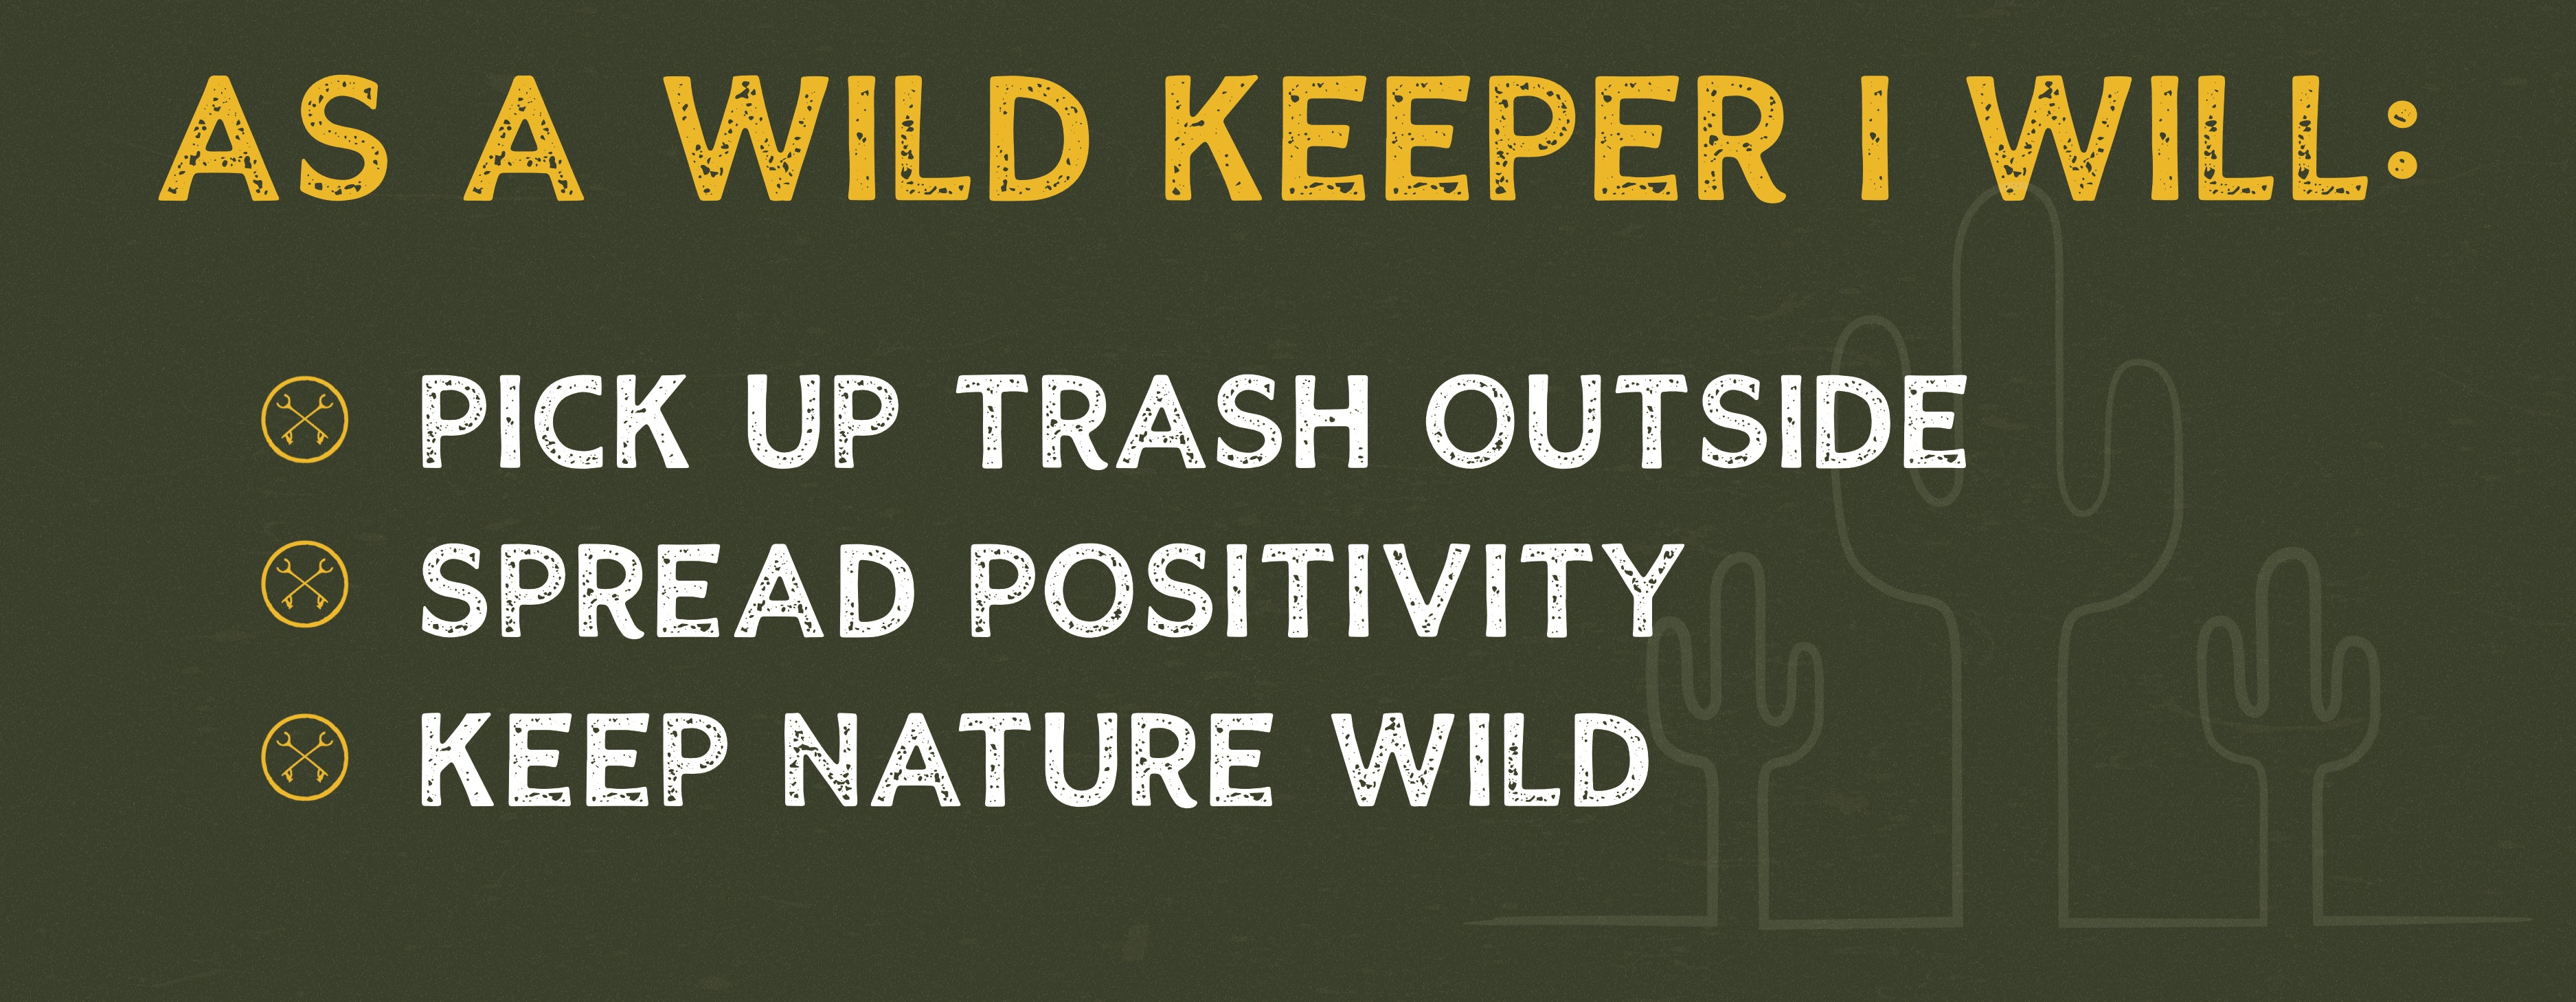 Keep Nature Wild Wild Keepers Pledge